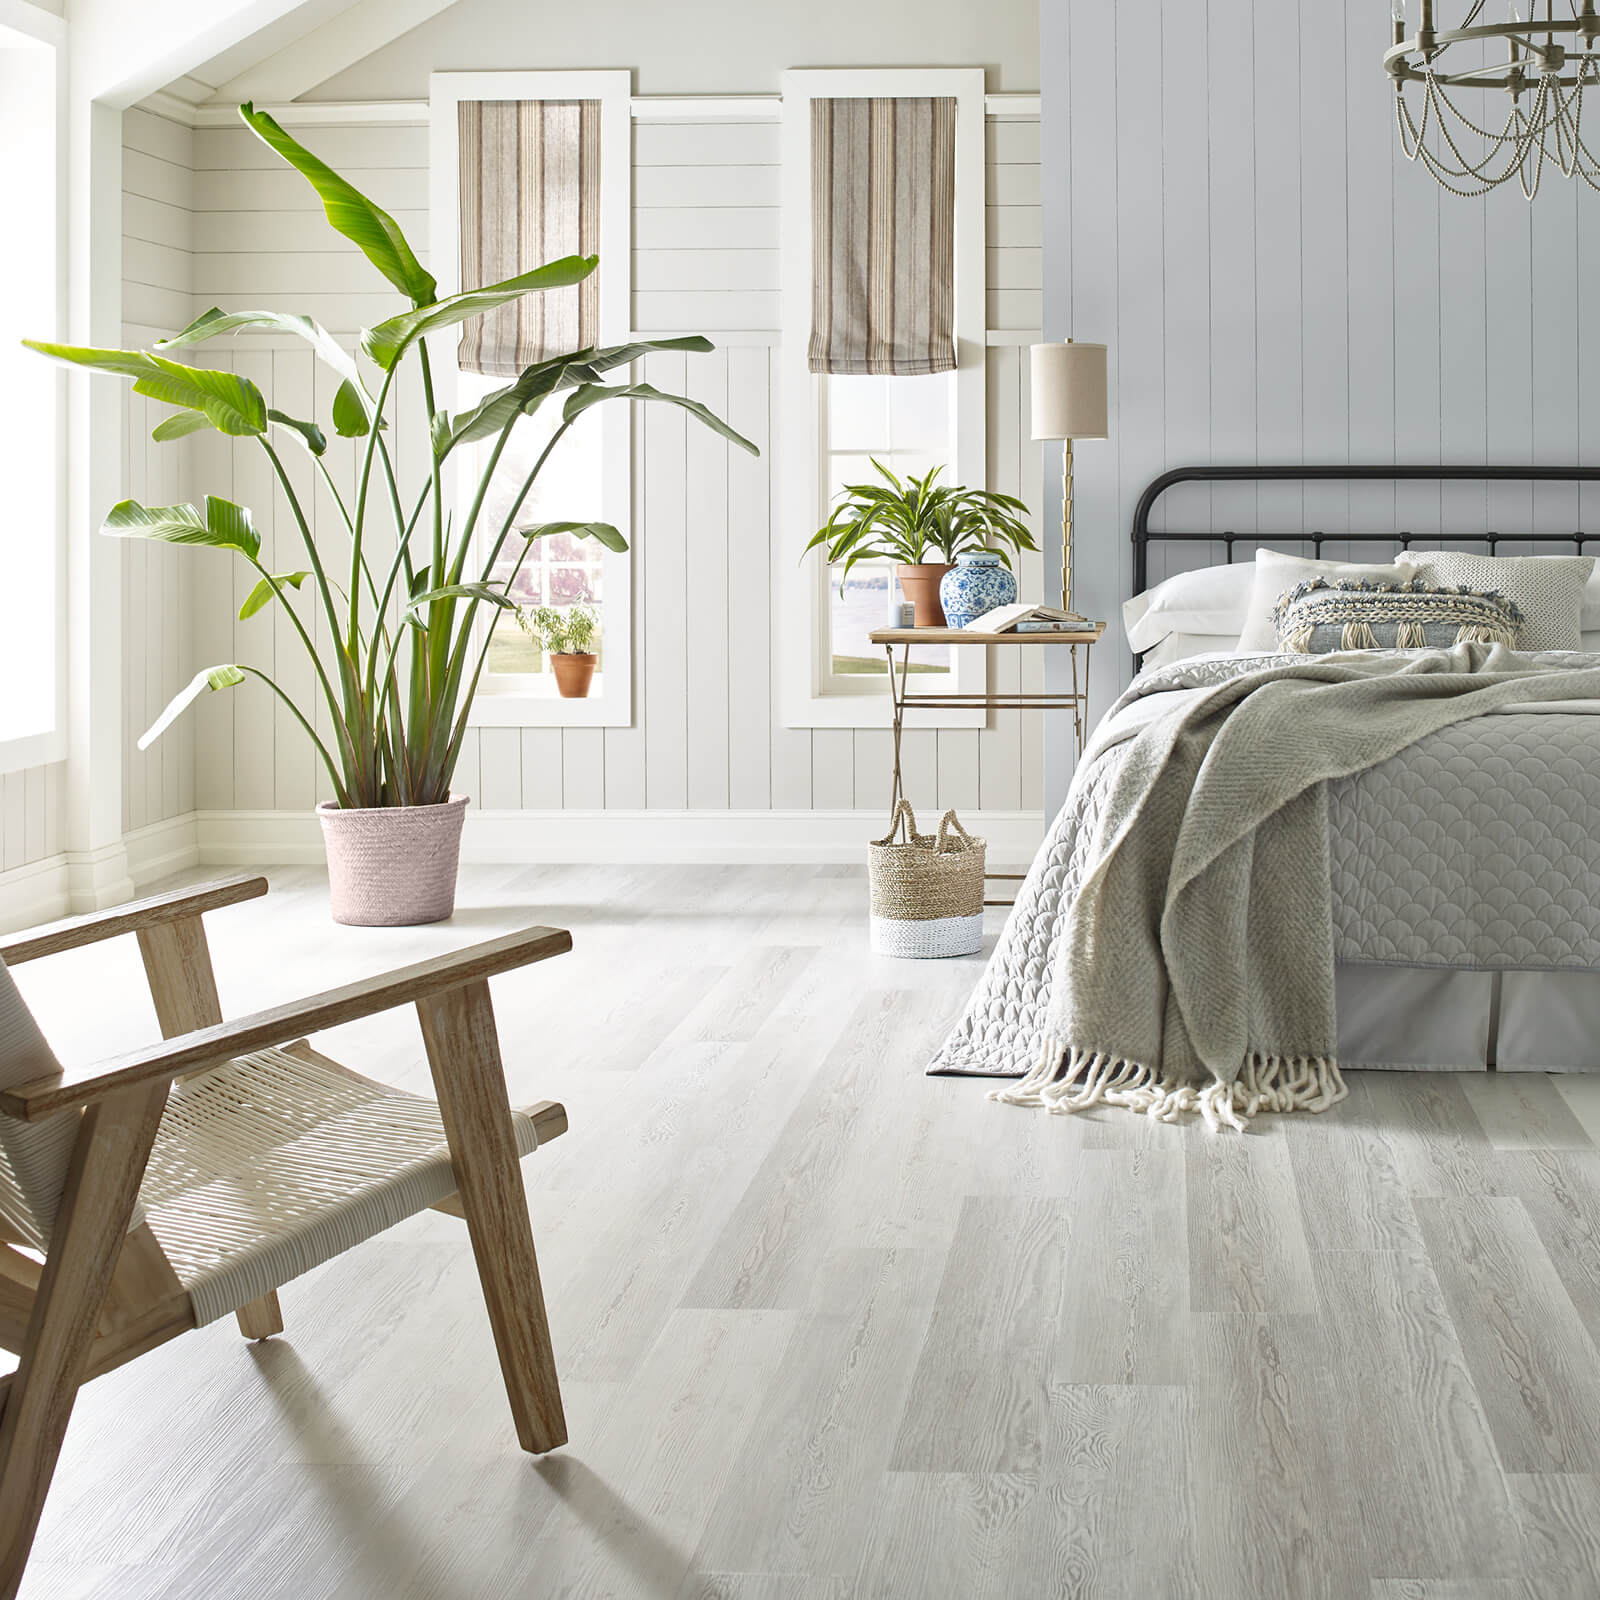 Century Pine Bedroom Wood | BMG Flooring & Tile Center